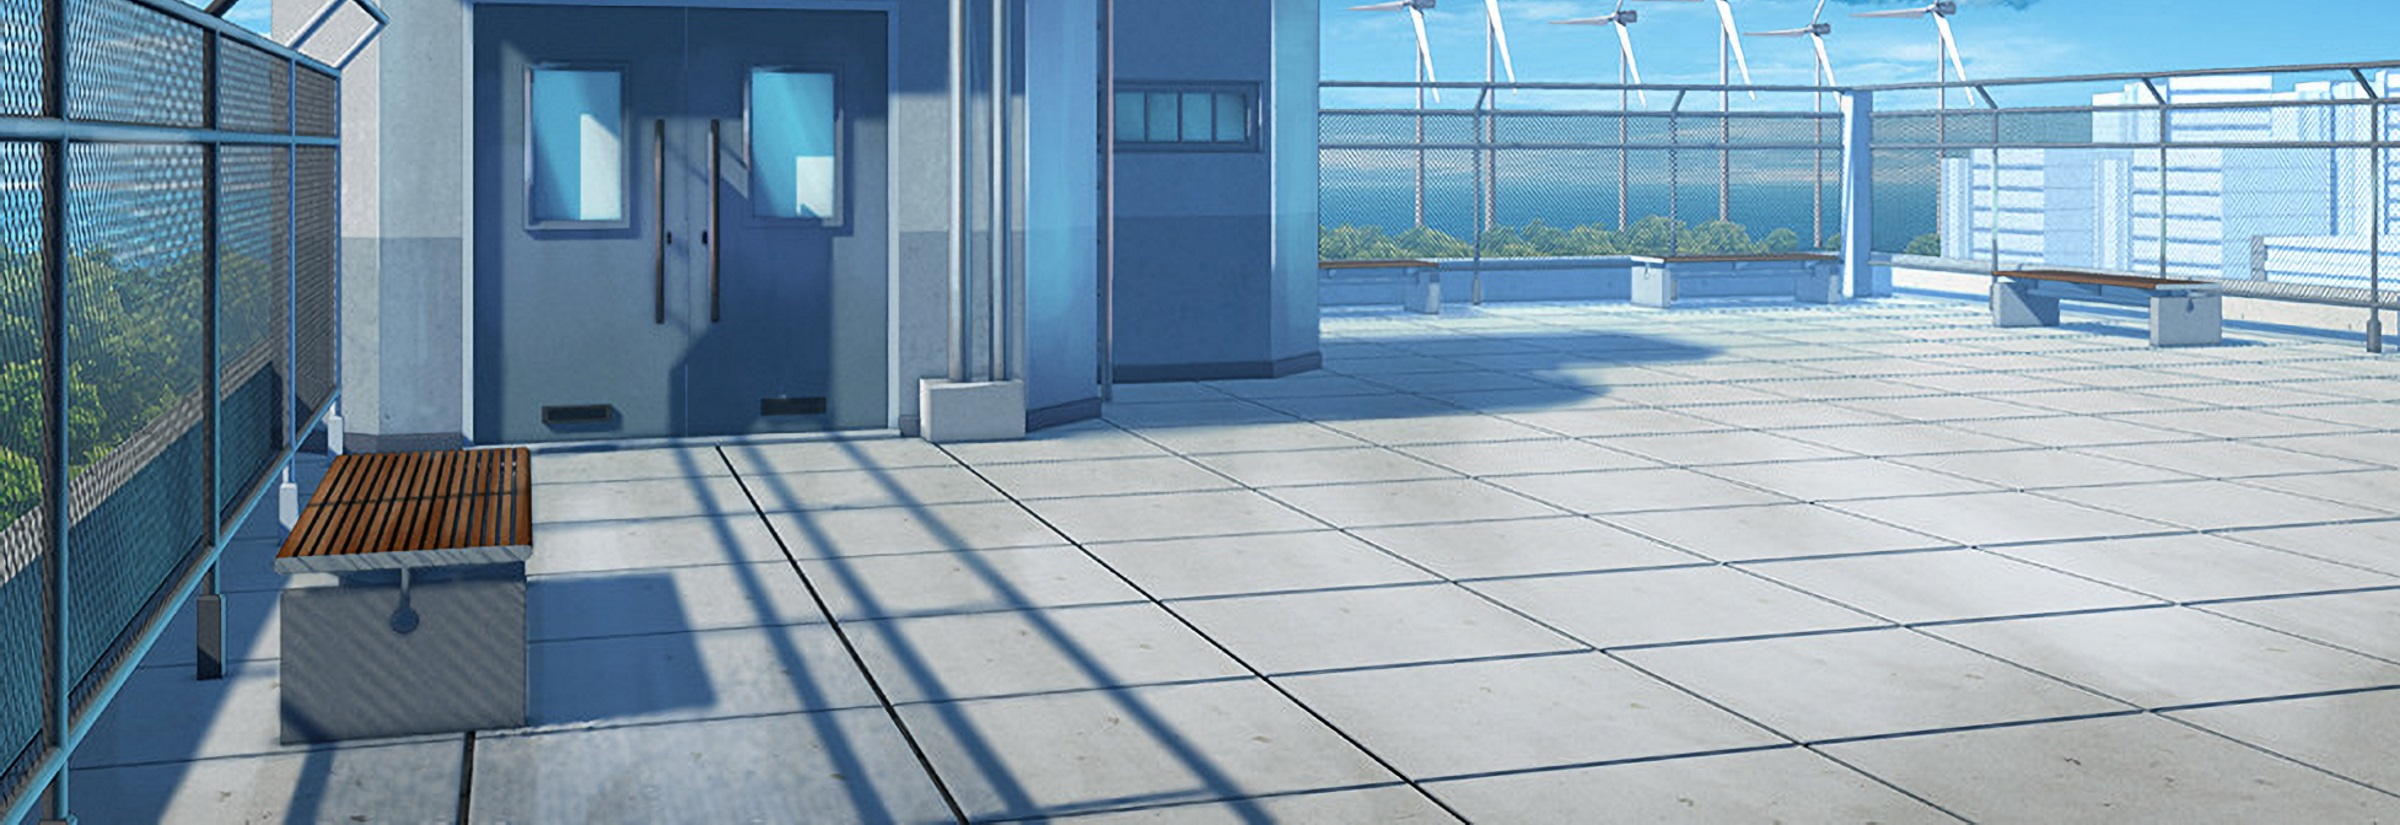 XL Background - Roof 01.jpg